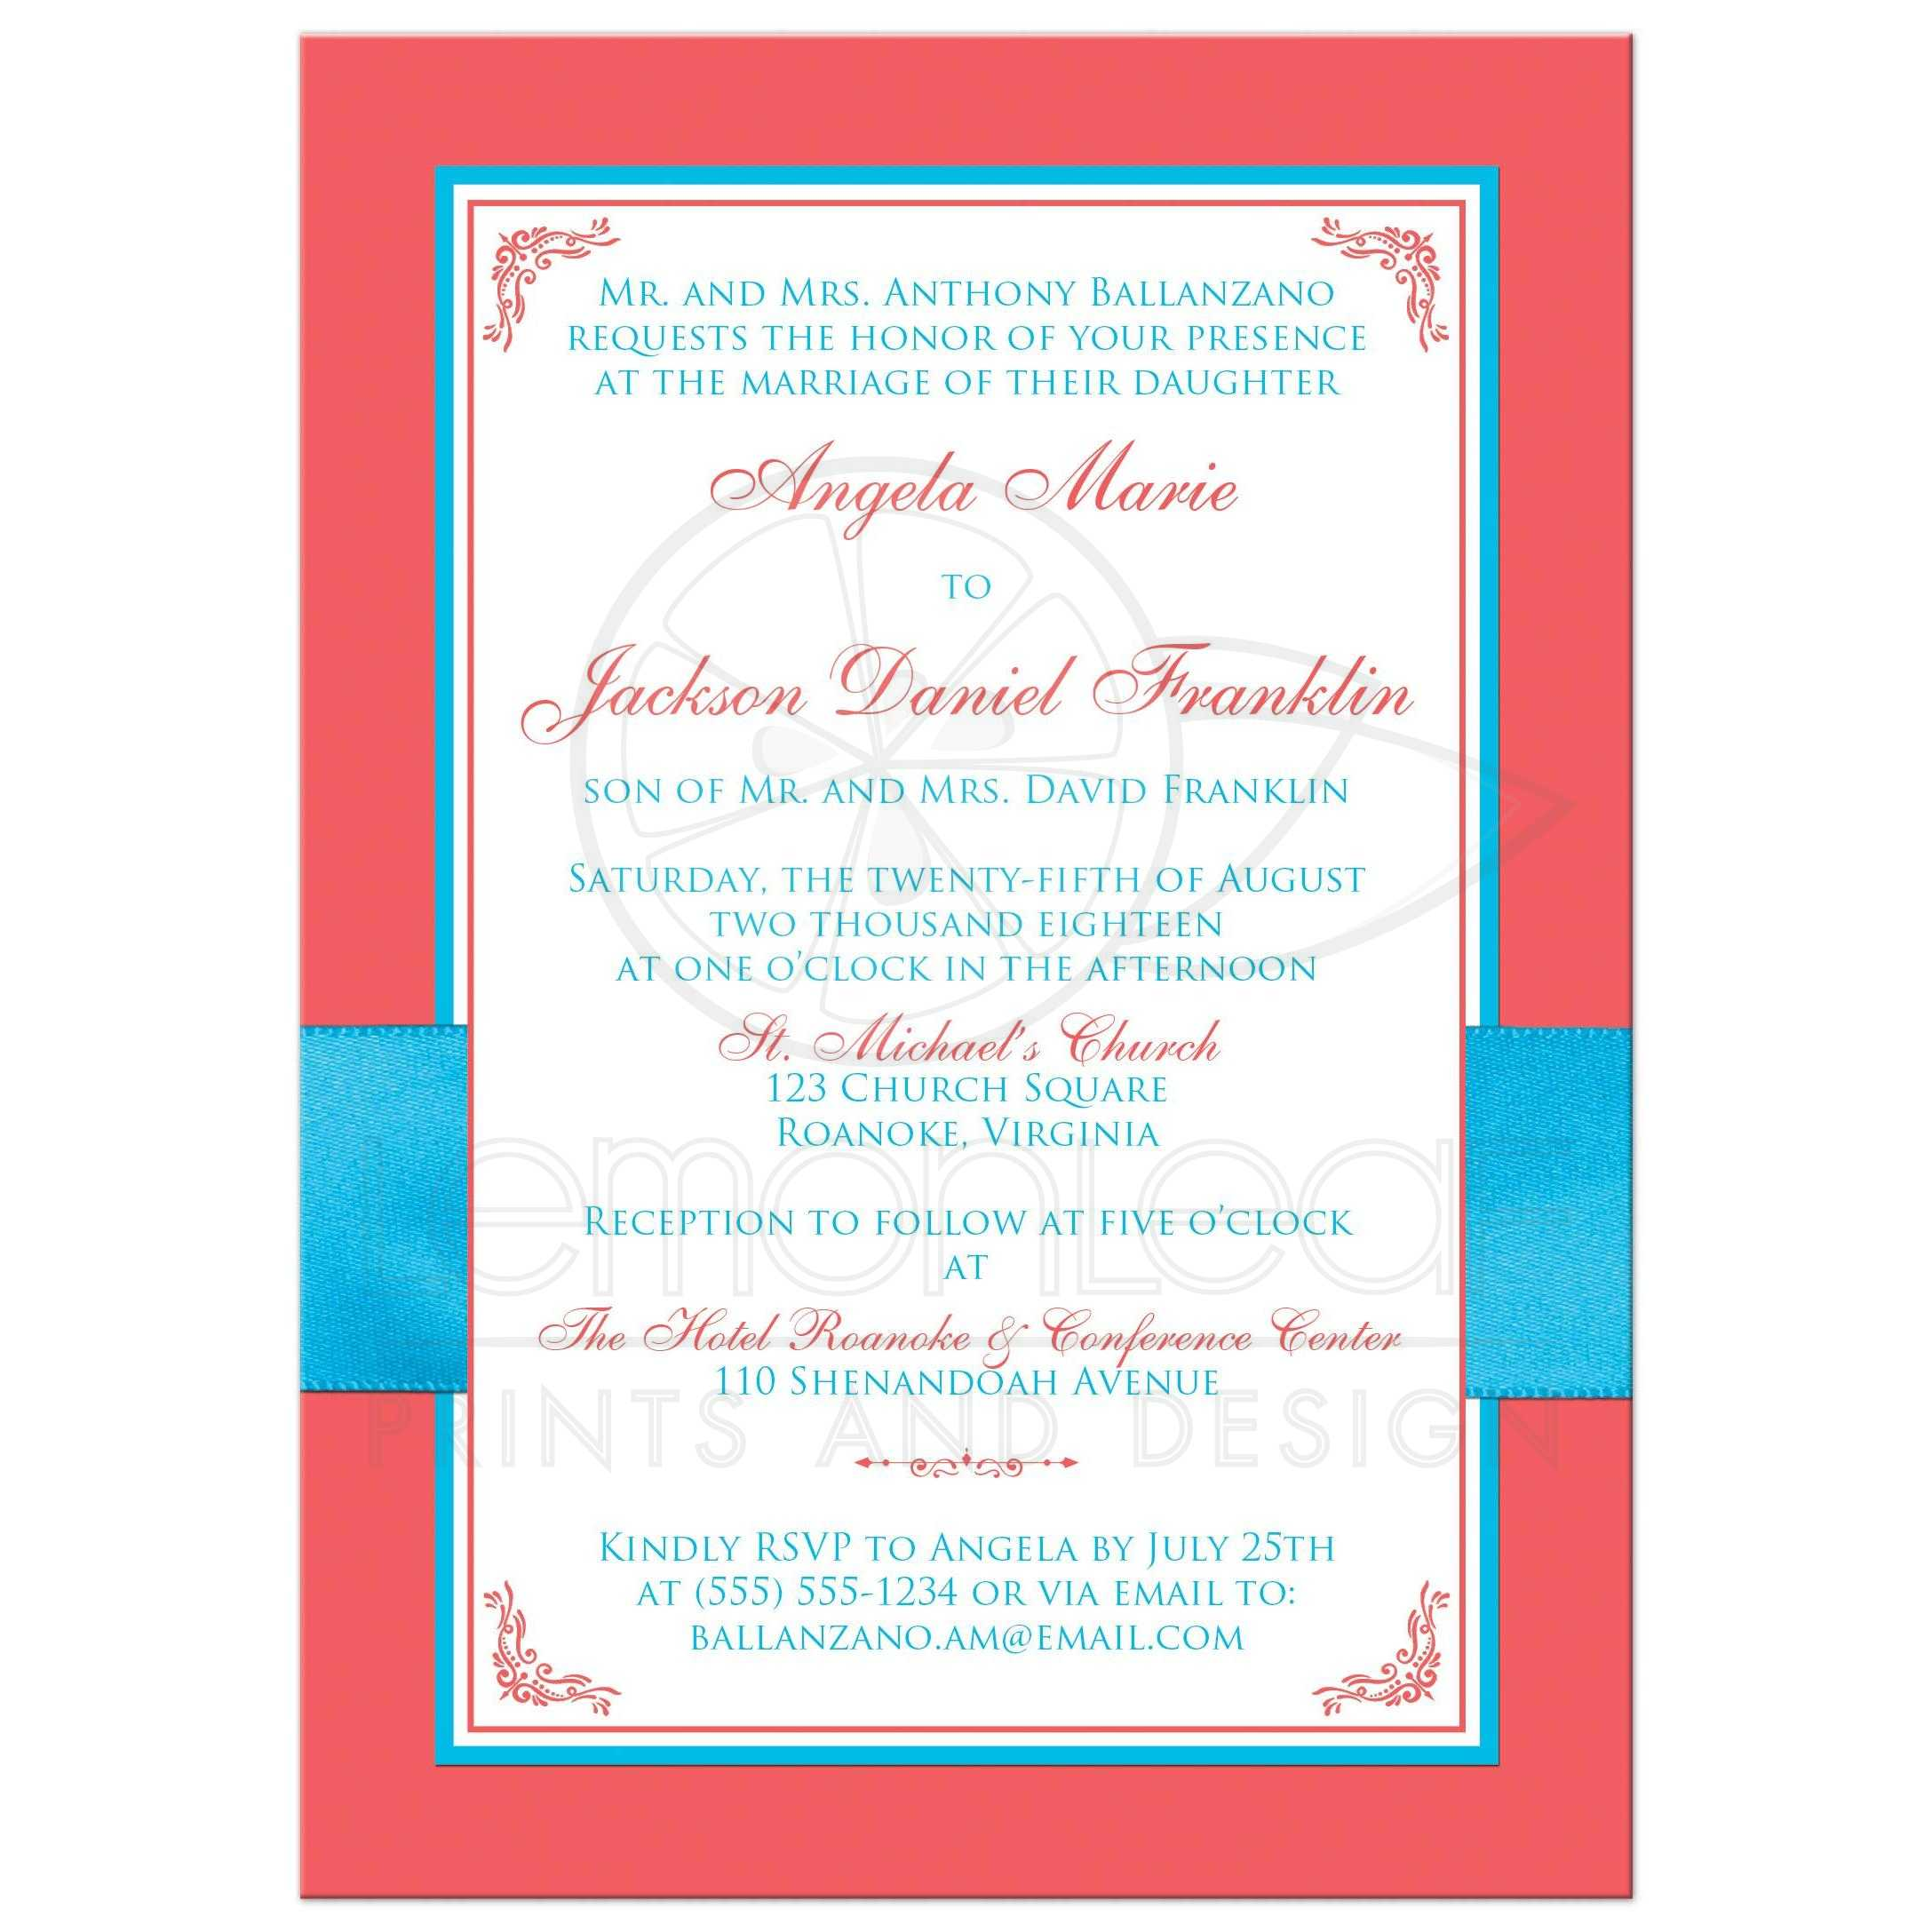 Malibu Blue, Coral, and White Floral Wedding Invitation | PRINTED ...